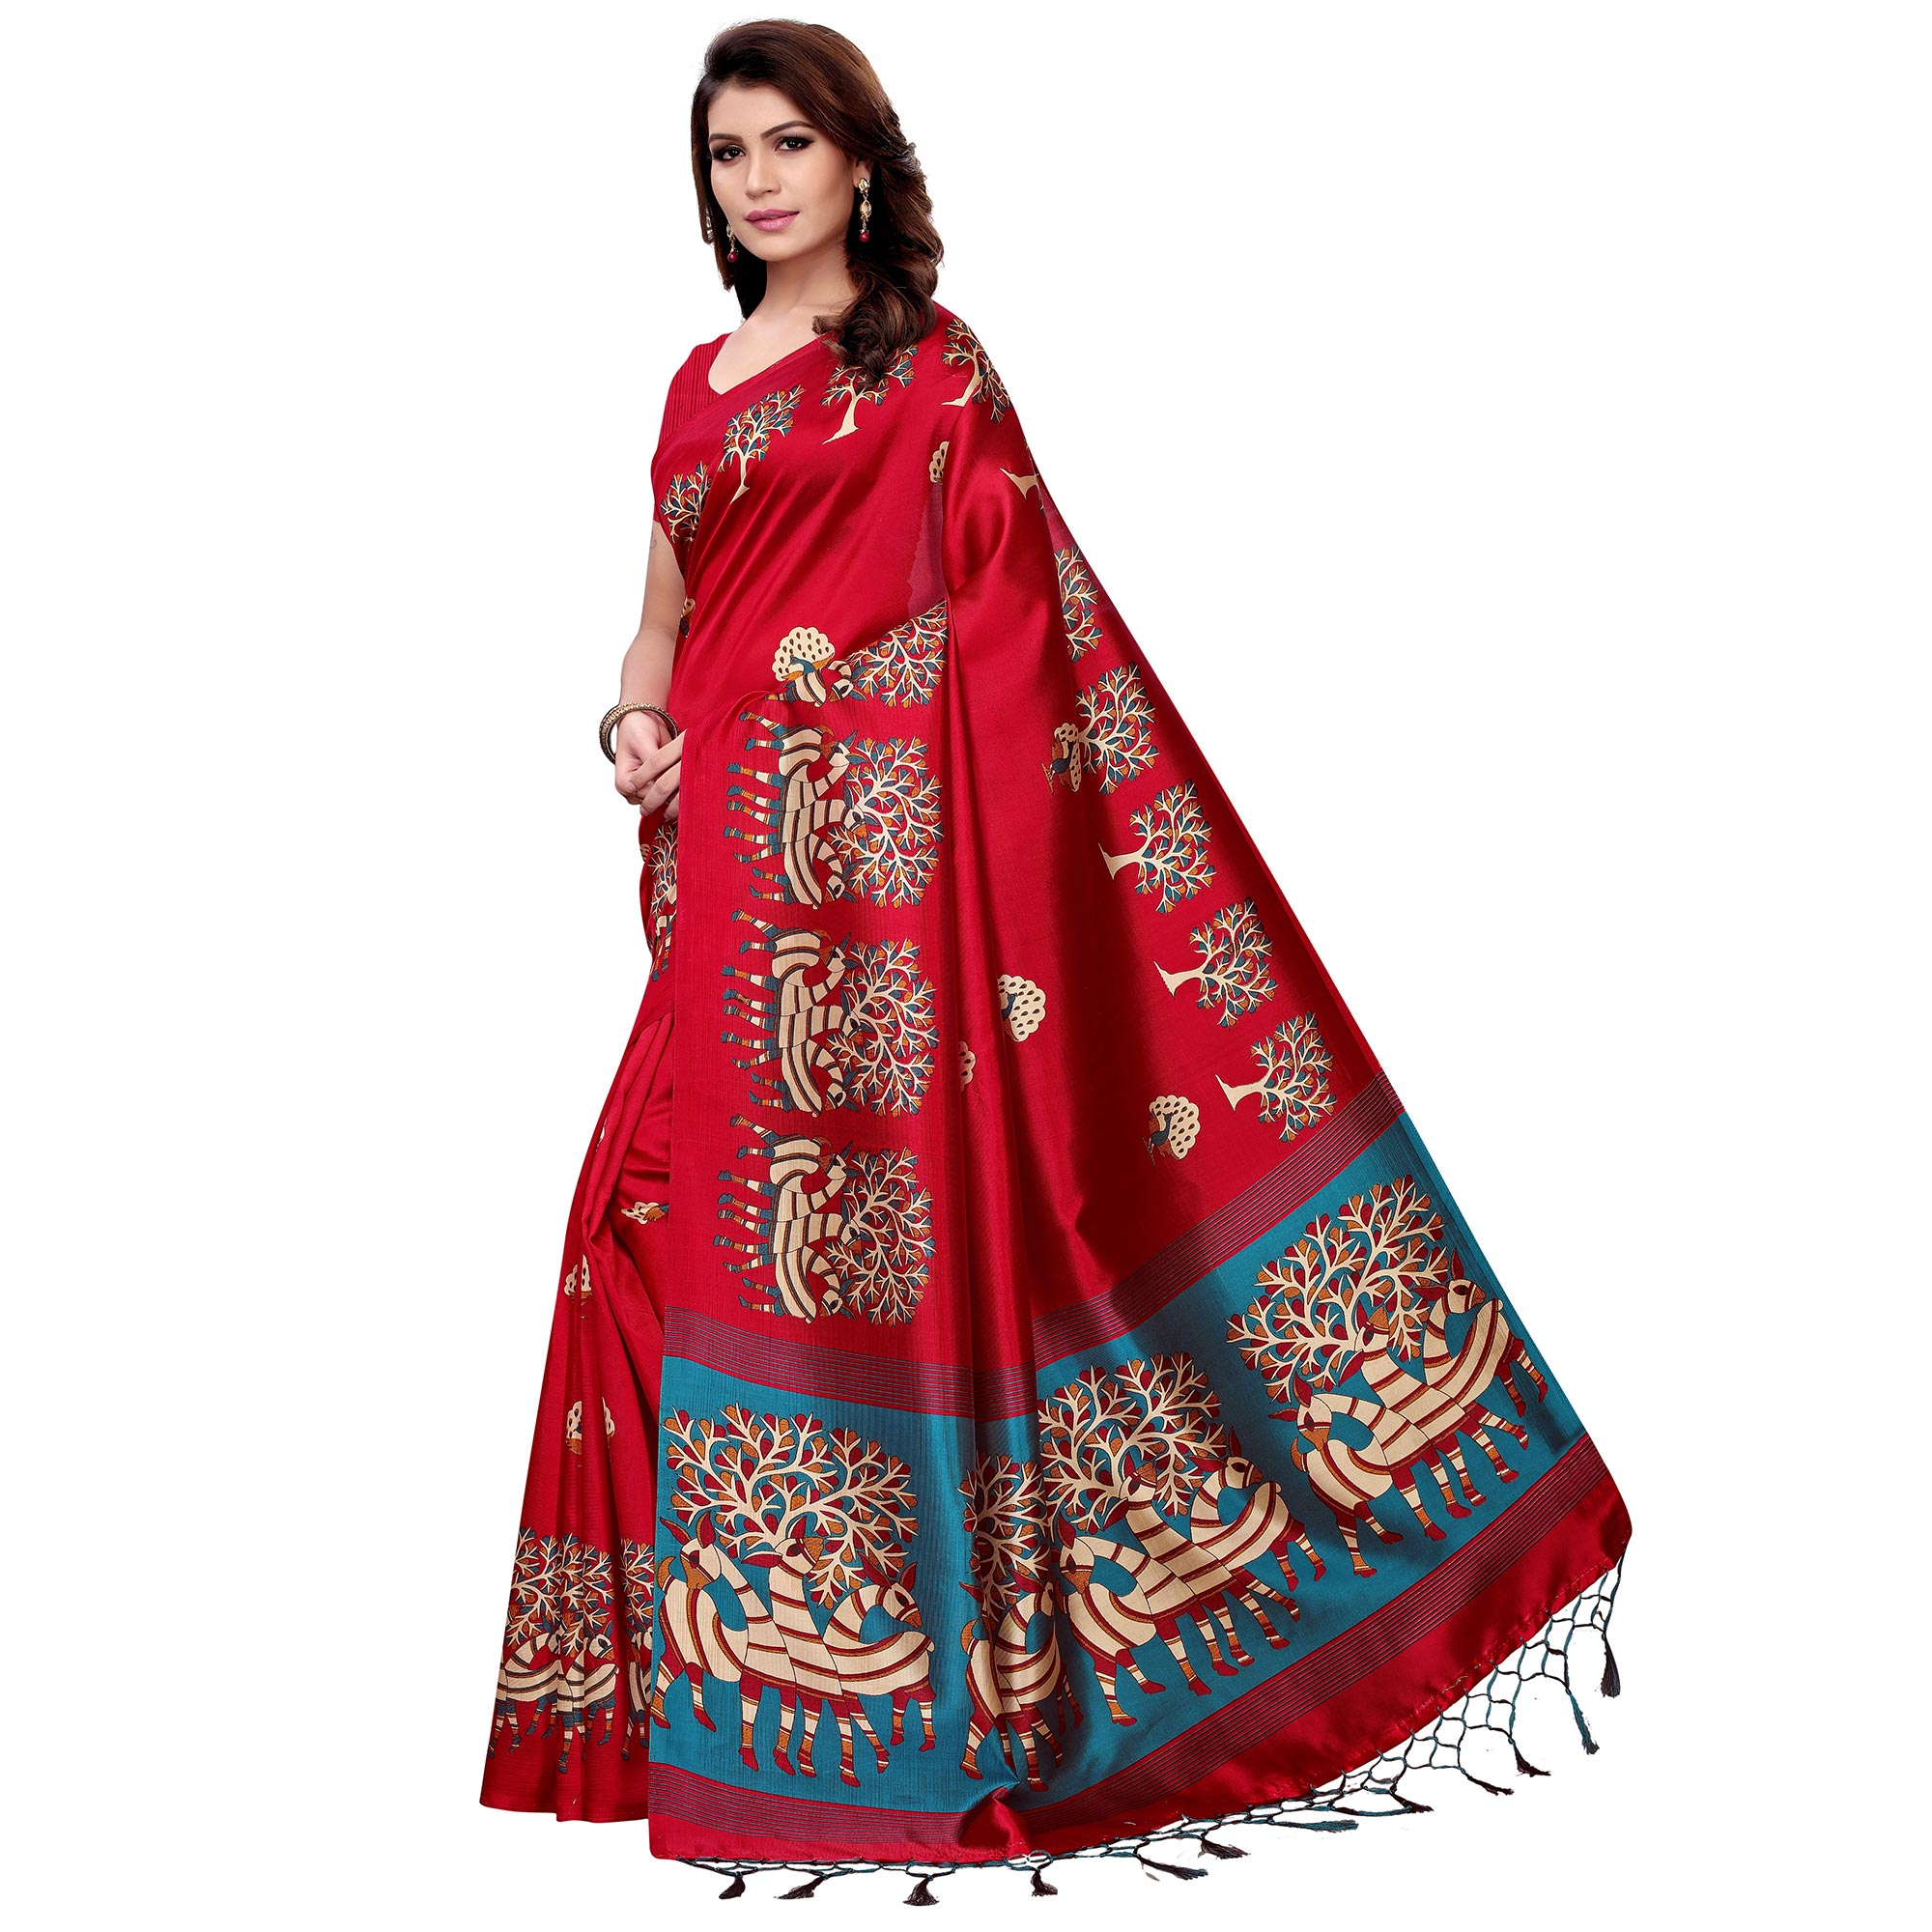 Marvellous Red Colored Festive Wear Art Silk Saree